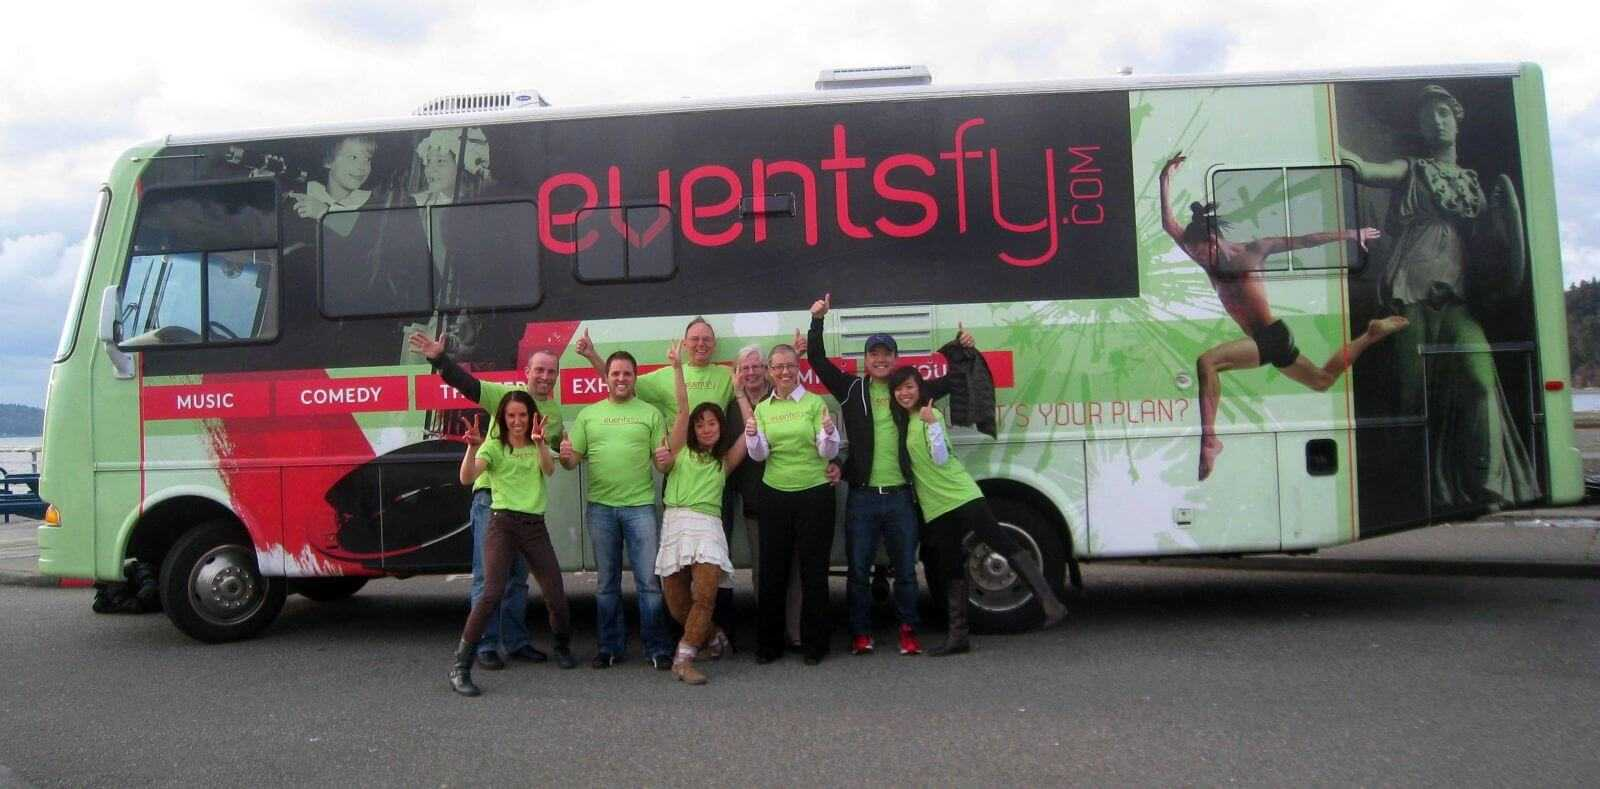 Eventsfy Team